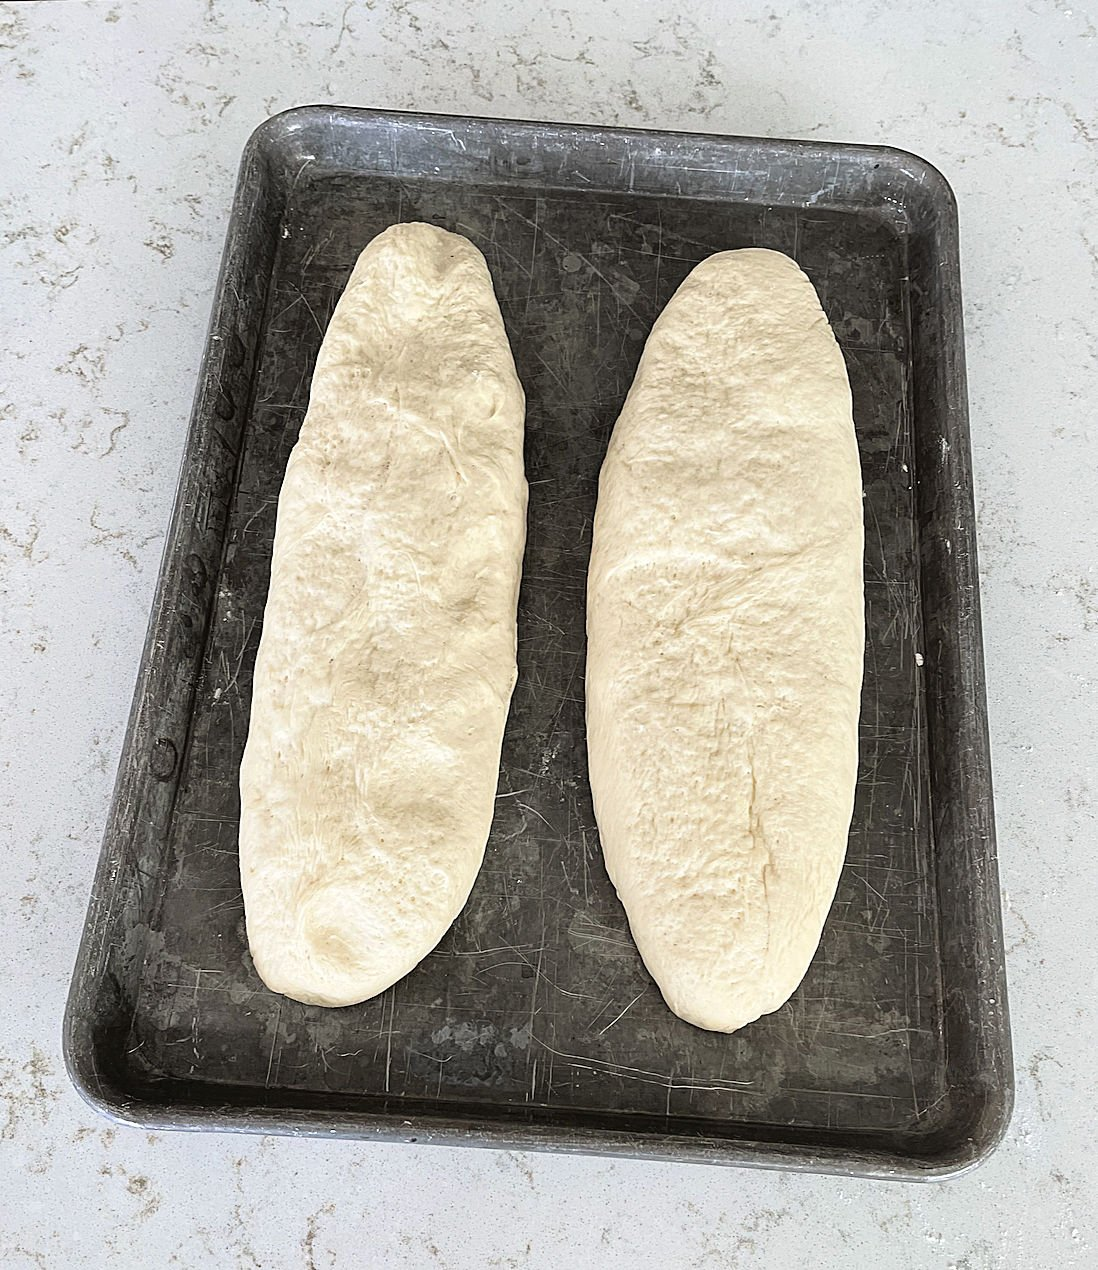 dough shaped into 2 loaves on a cooking sheet